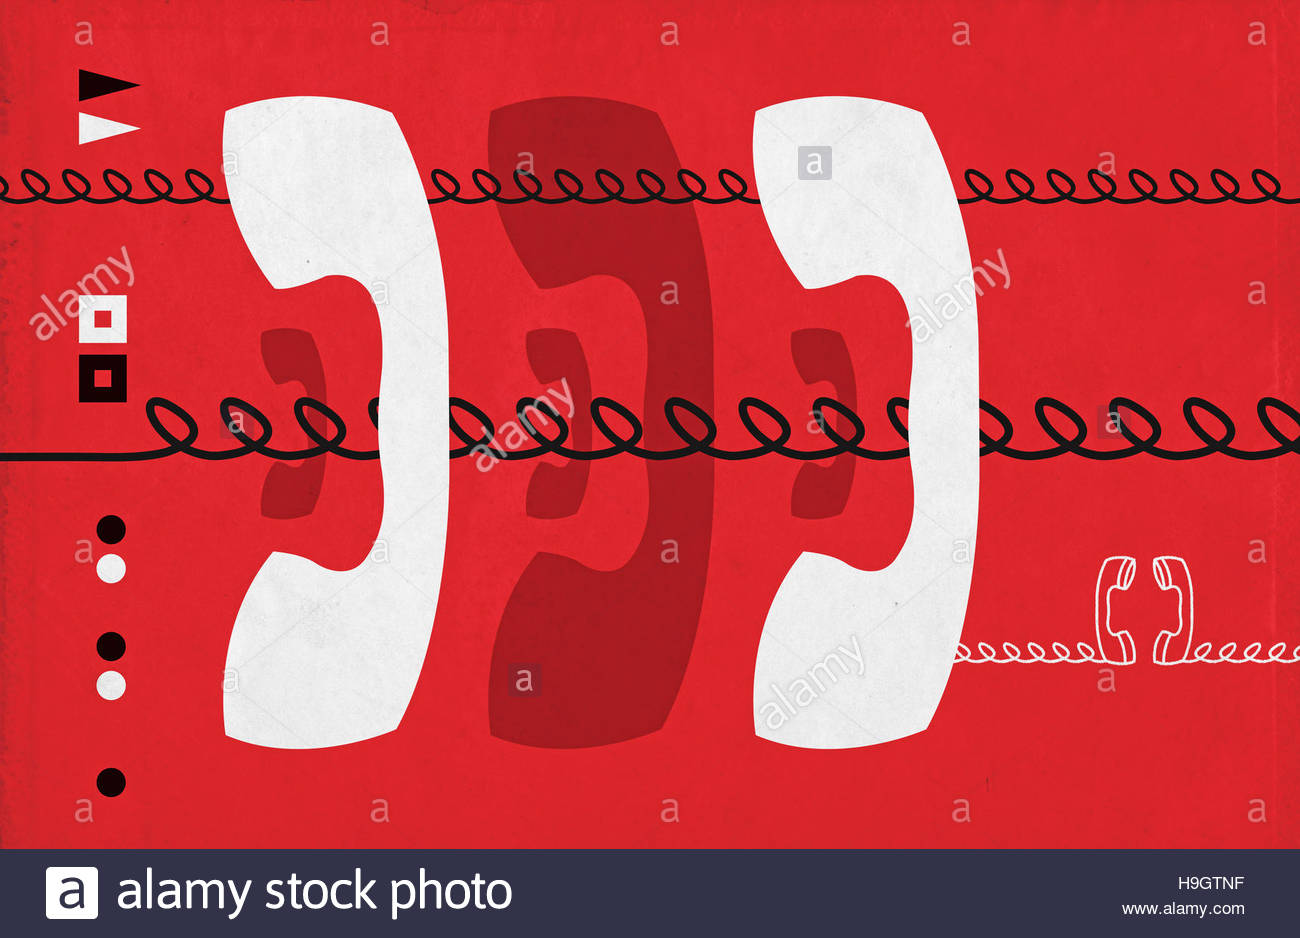 Retro Telephone mid century vintage style illustration - Stock Image